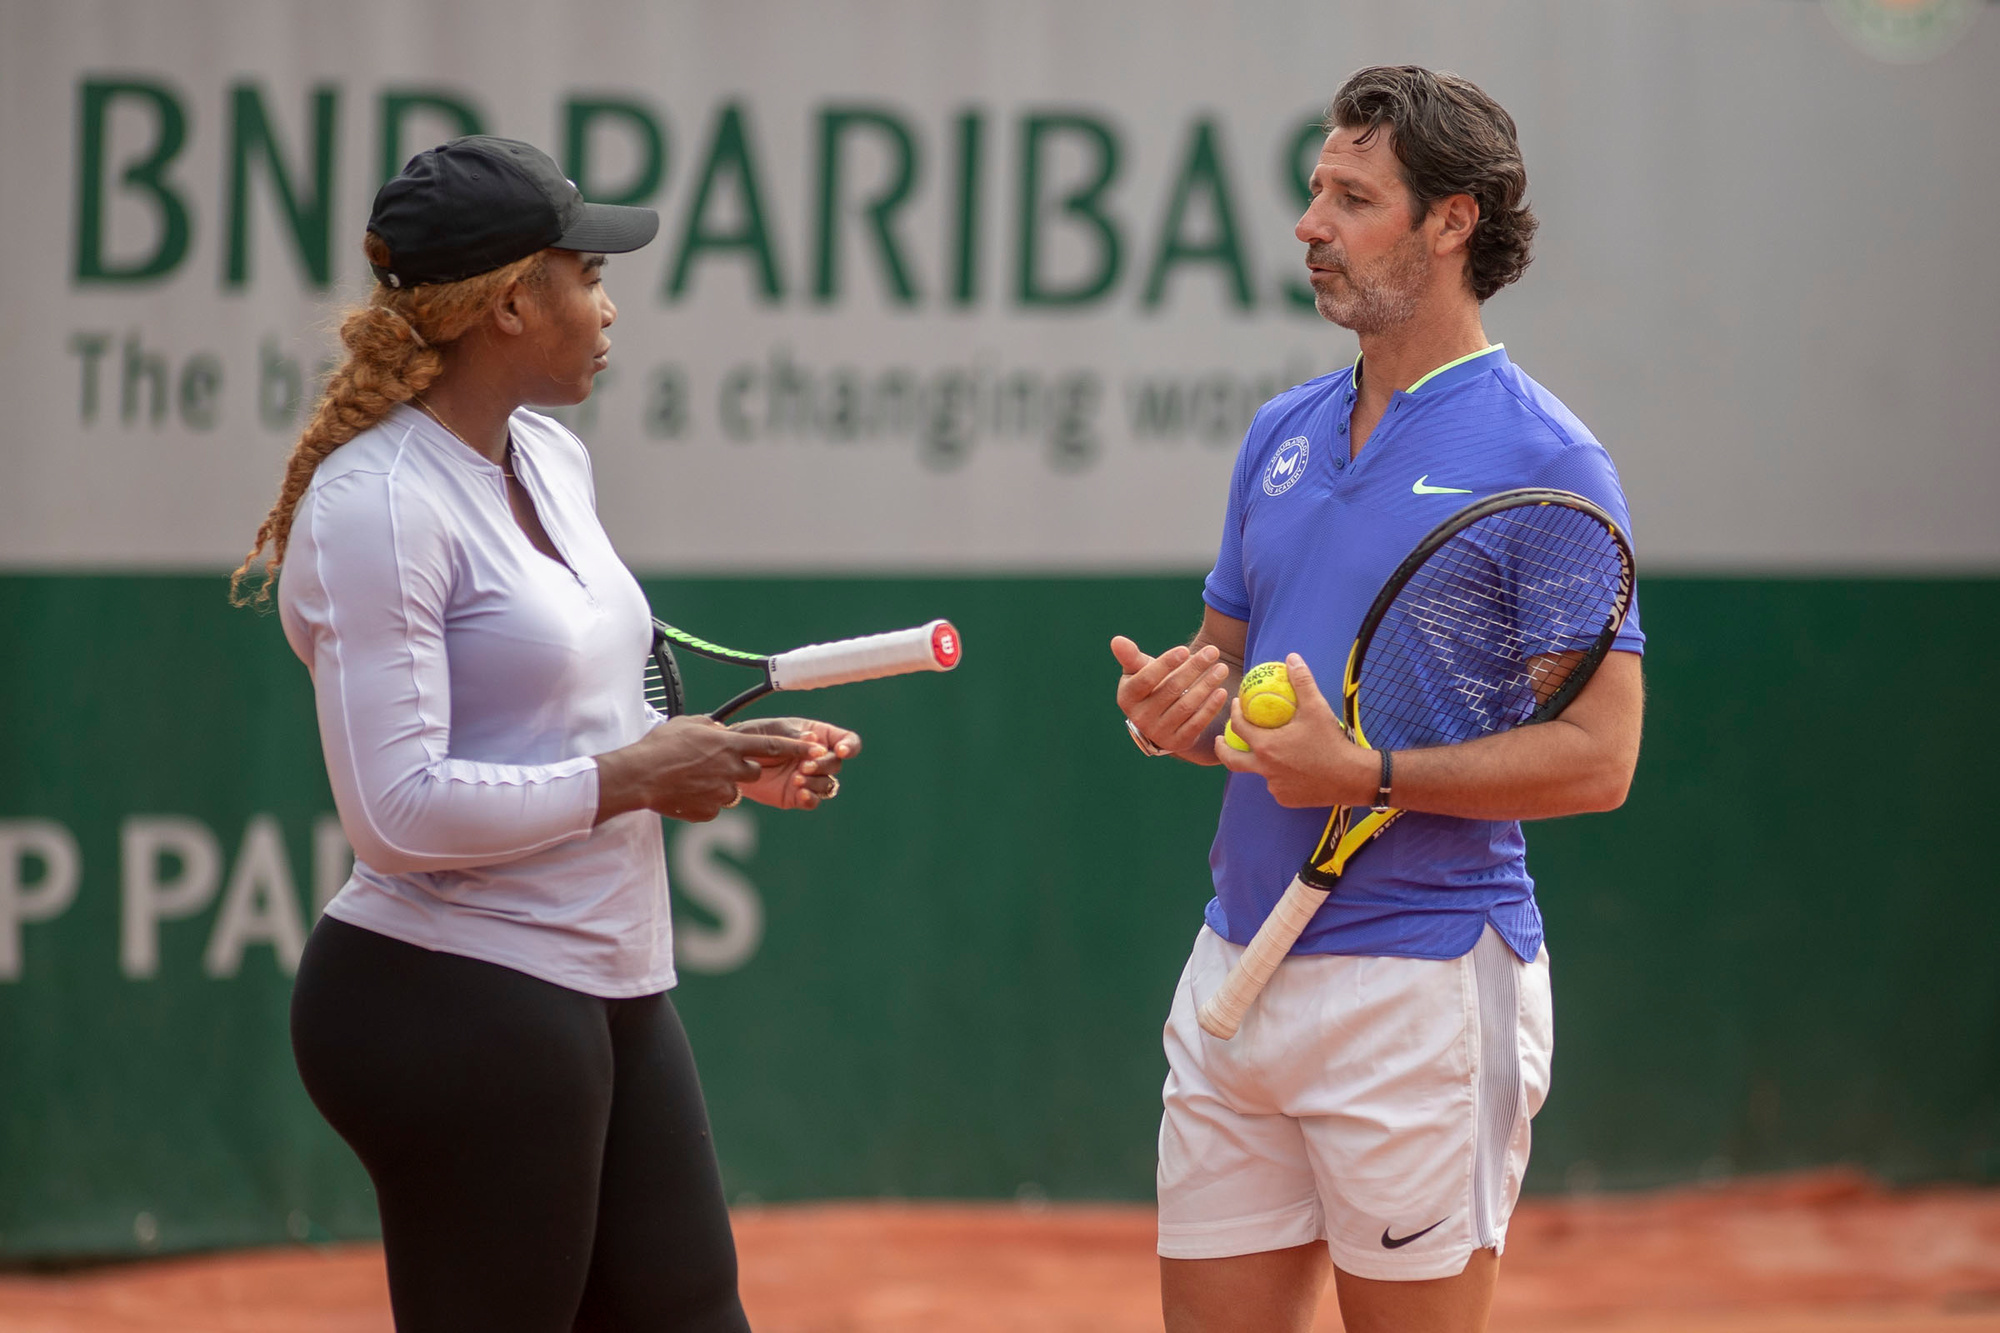 Mouratoglou is al jaren de coach van Serena Williams, GETTY